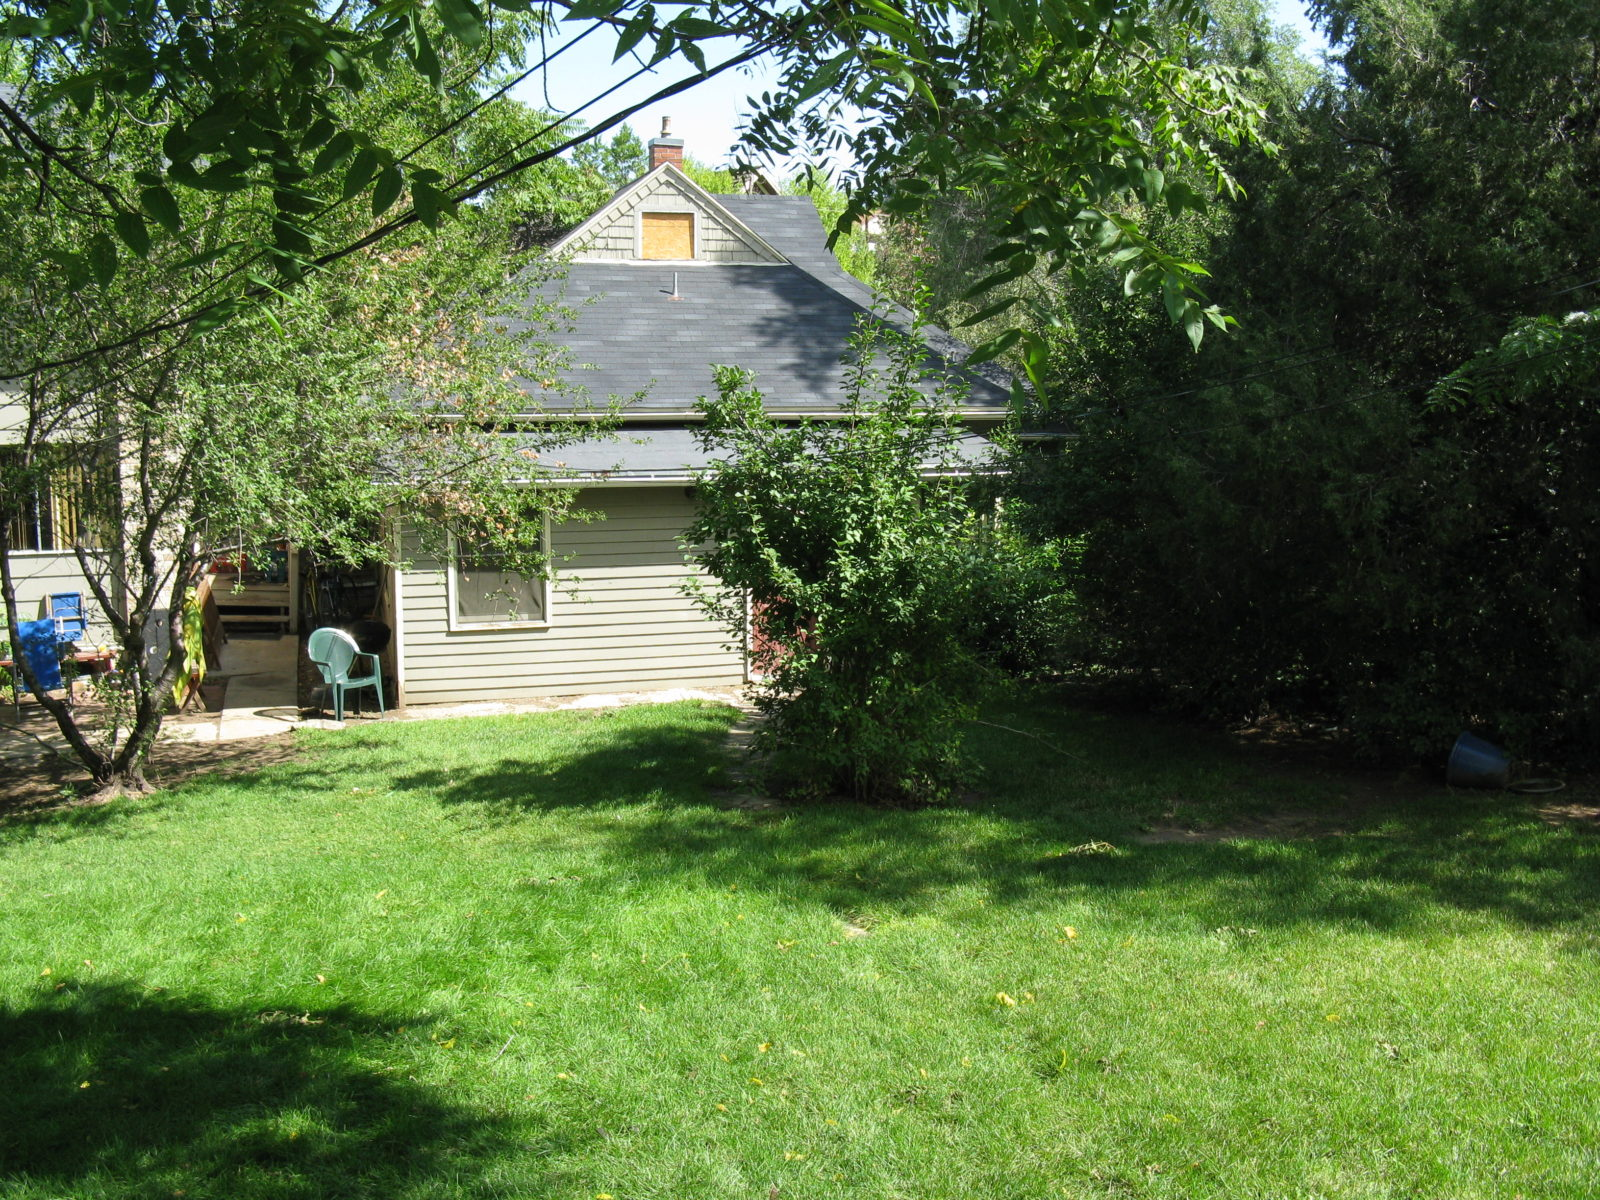 2473: Back of House with Yard